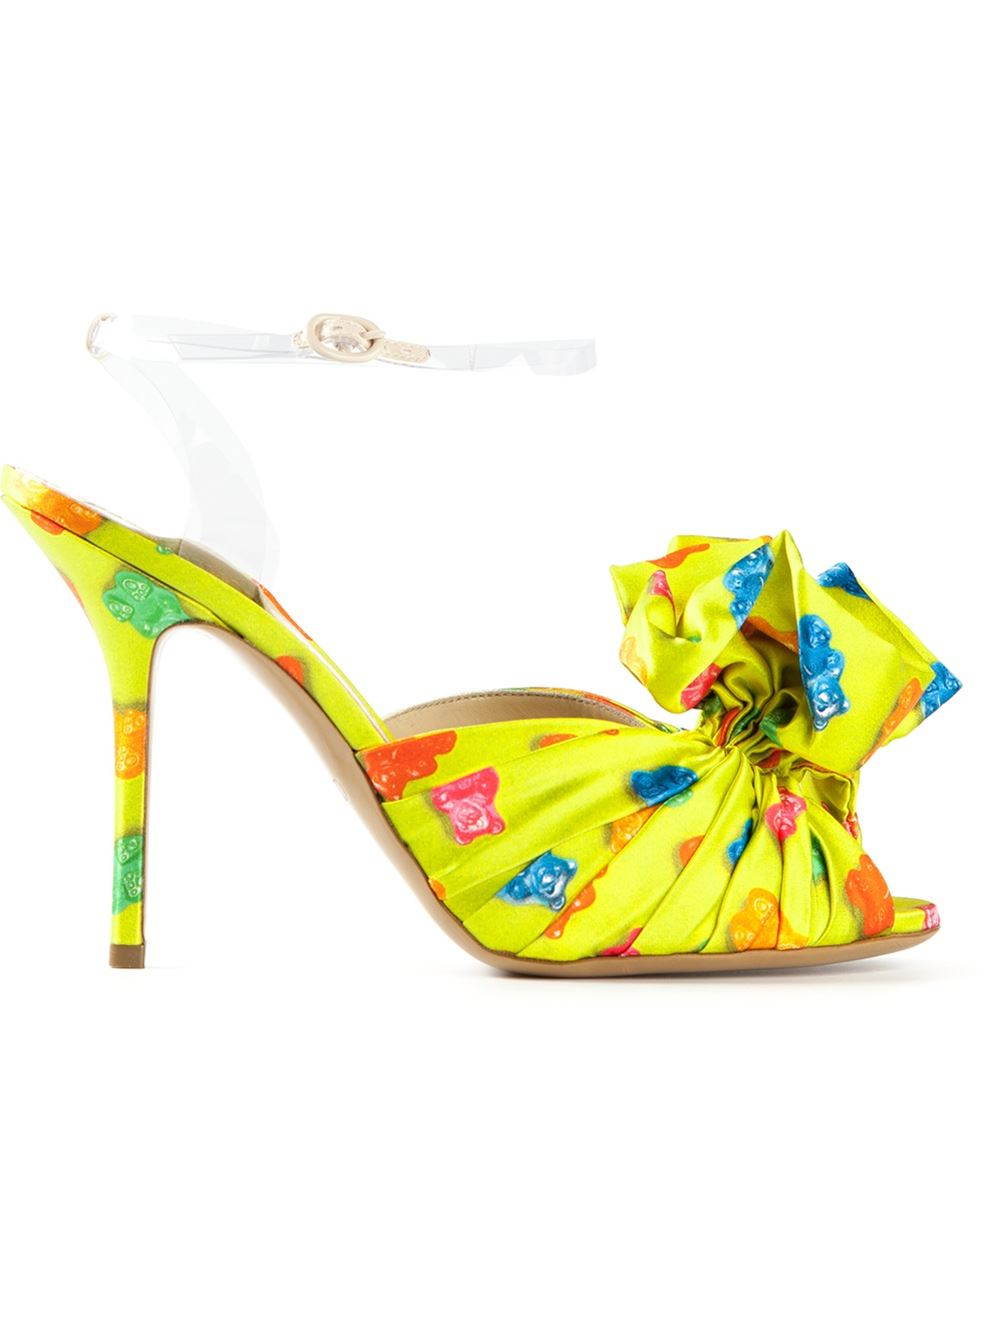 87b79deac8f447 Moschino Gummy Bear Print Sandals in Yellow - Lyst